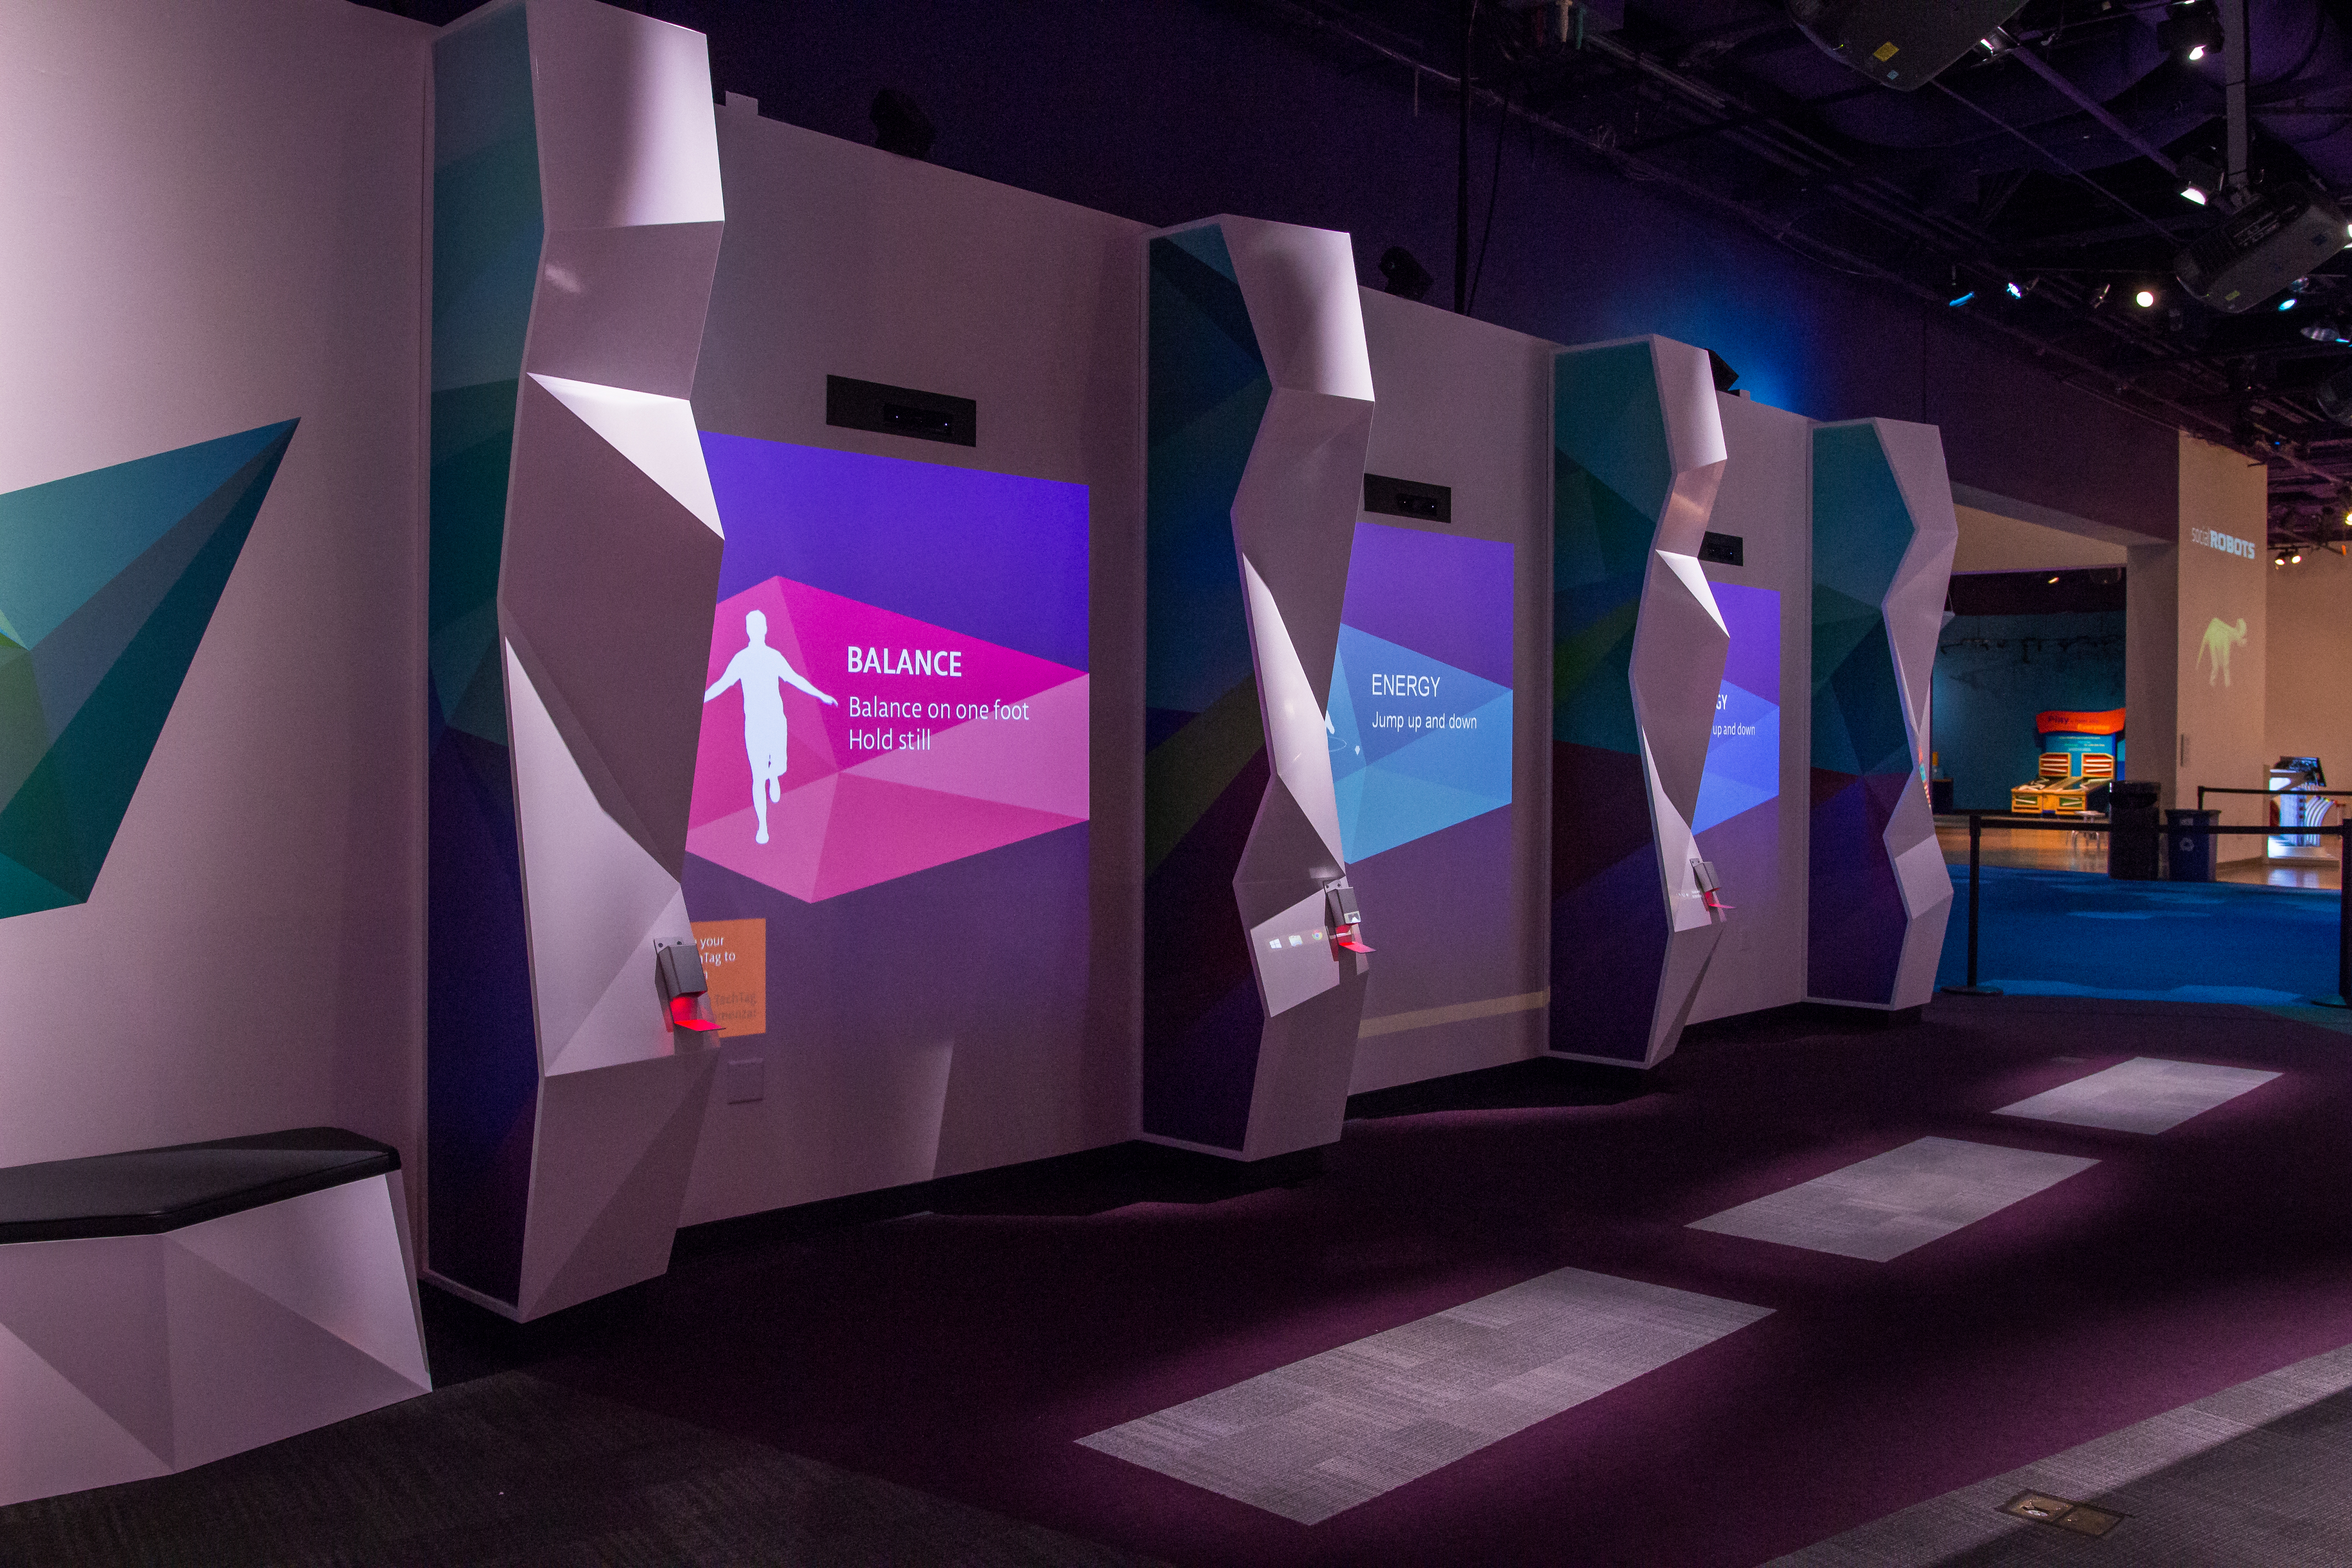 Body Moves exhibit showing three interactive screens